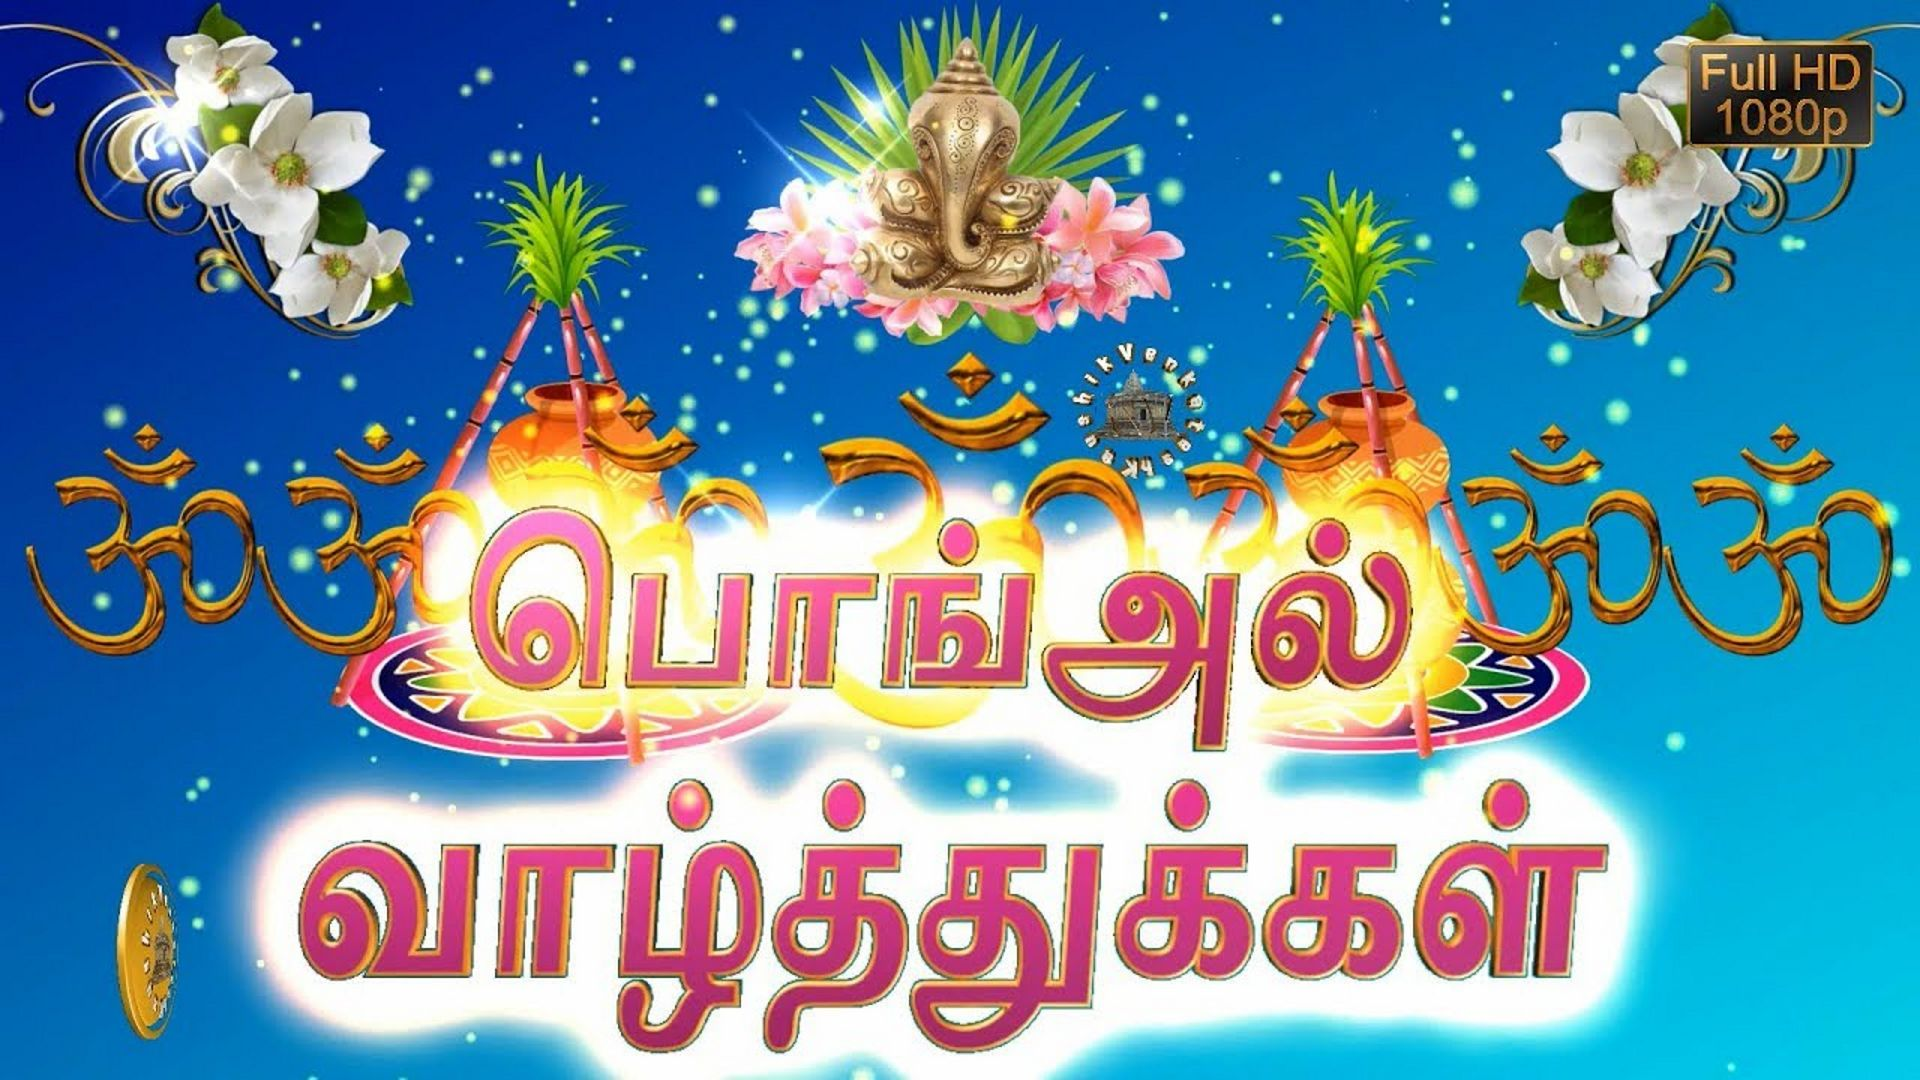 Greetings Image for Harvest festival of Tamil Nadu (Pongal).